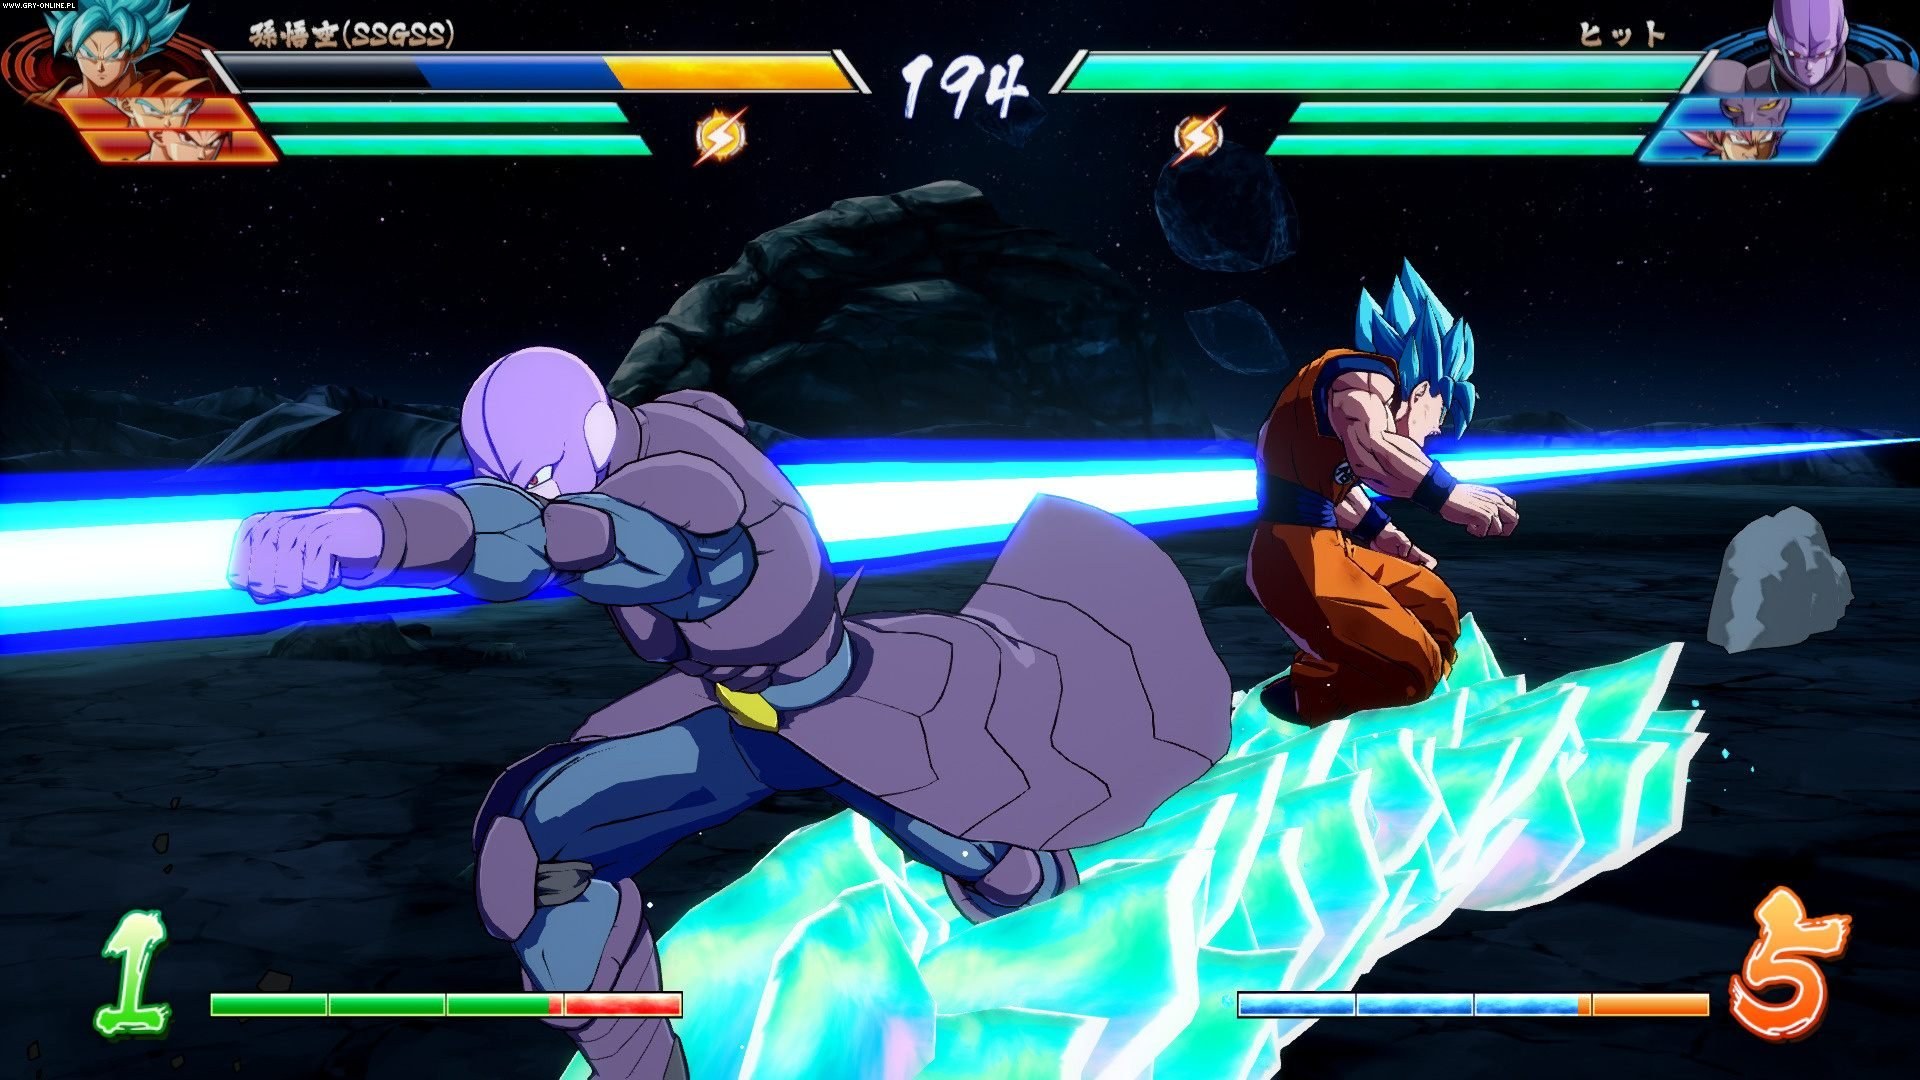 Dragon Ball FighterZ PC, PS4, XONE Games Image 48/158, Arc System Works, Bandai Namco Entertainment